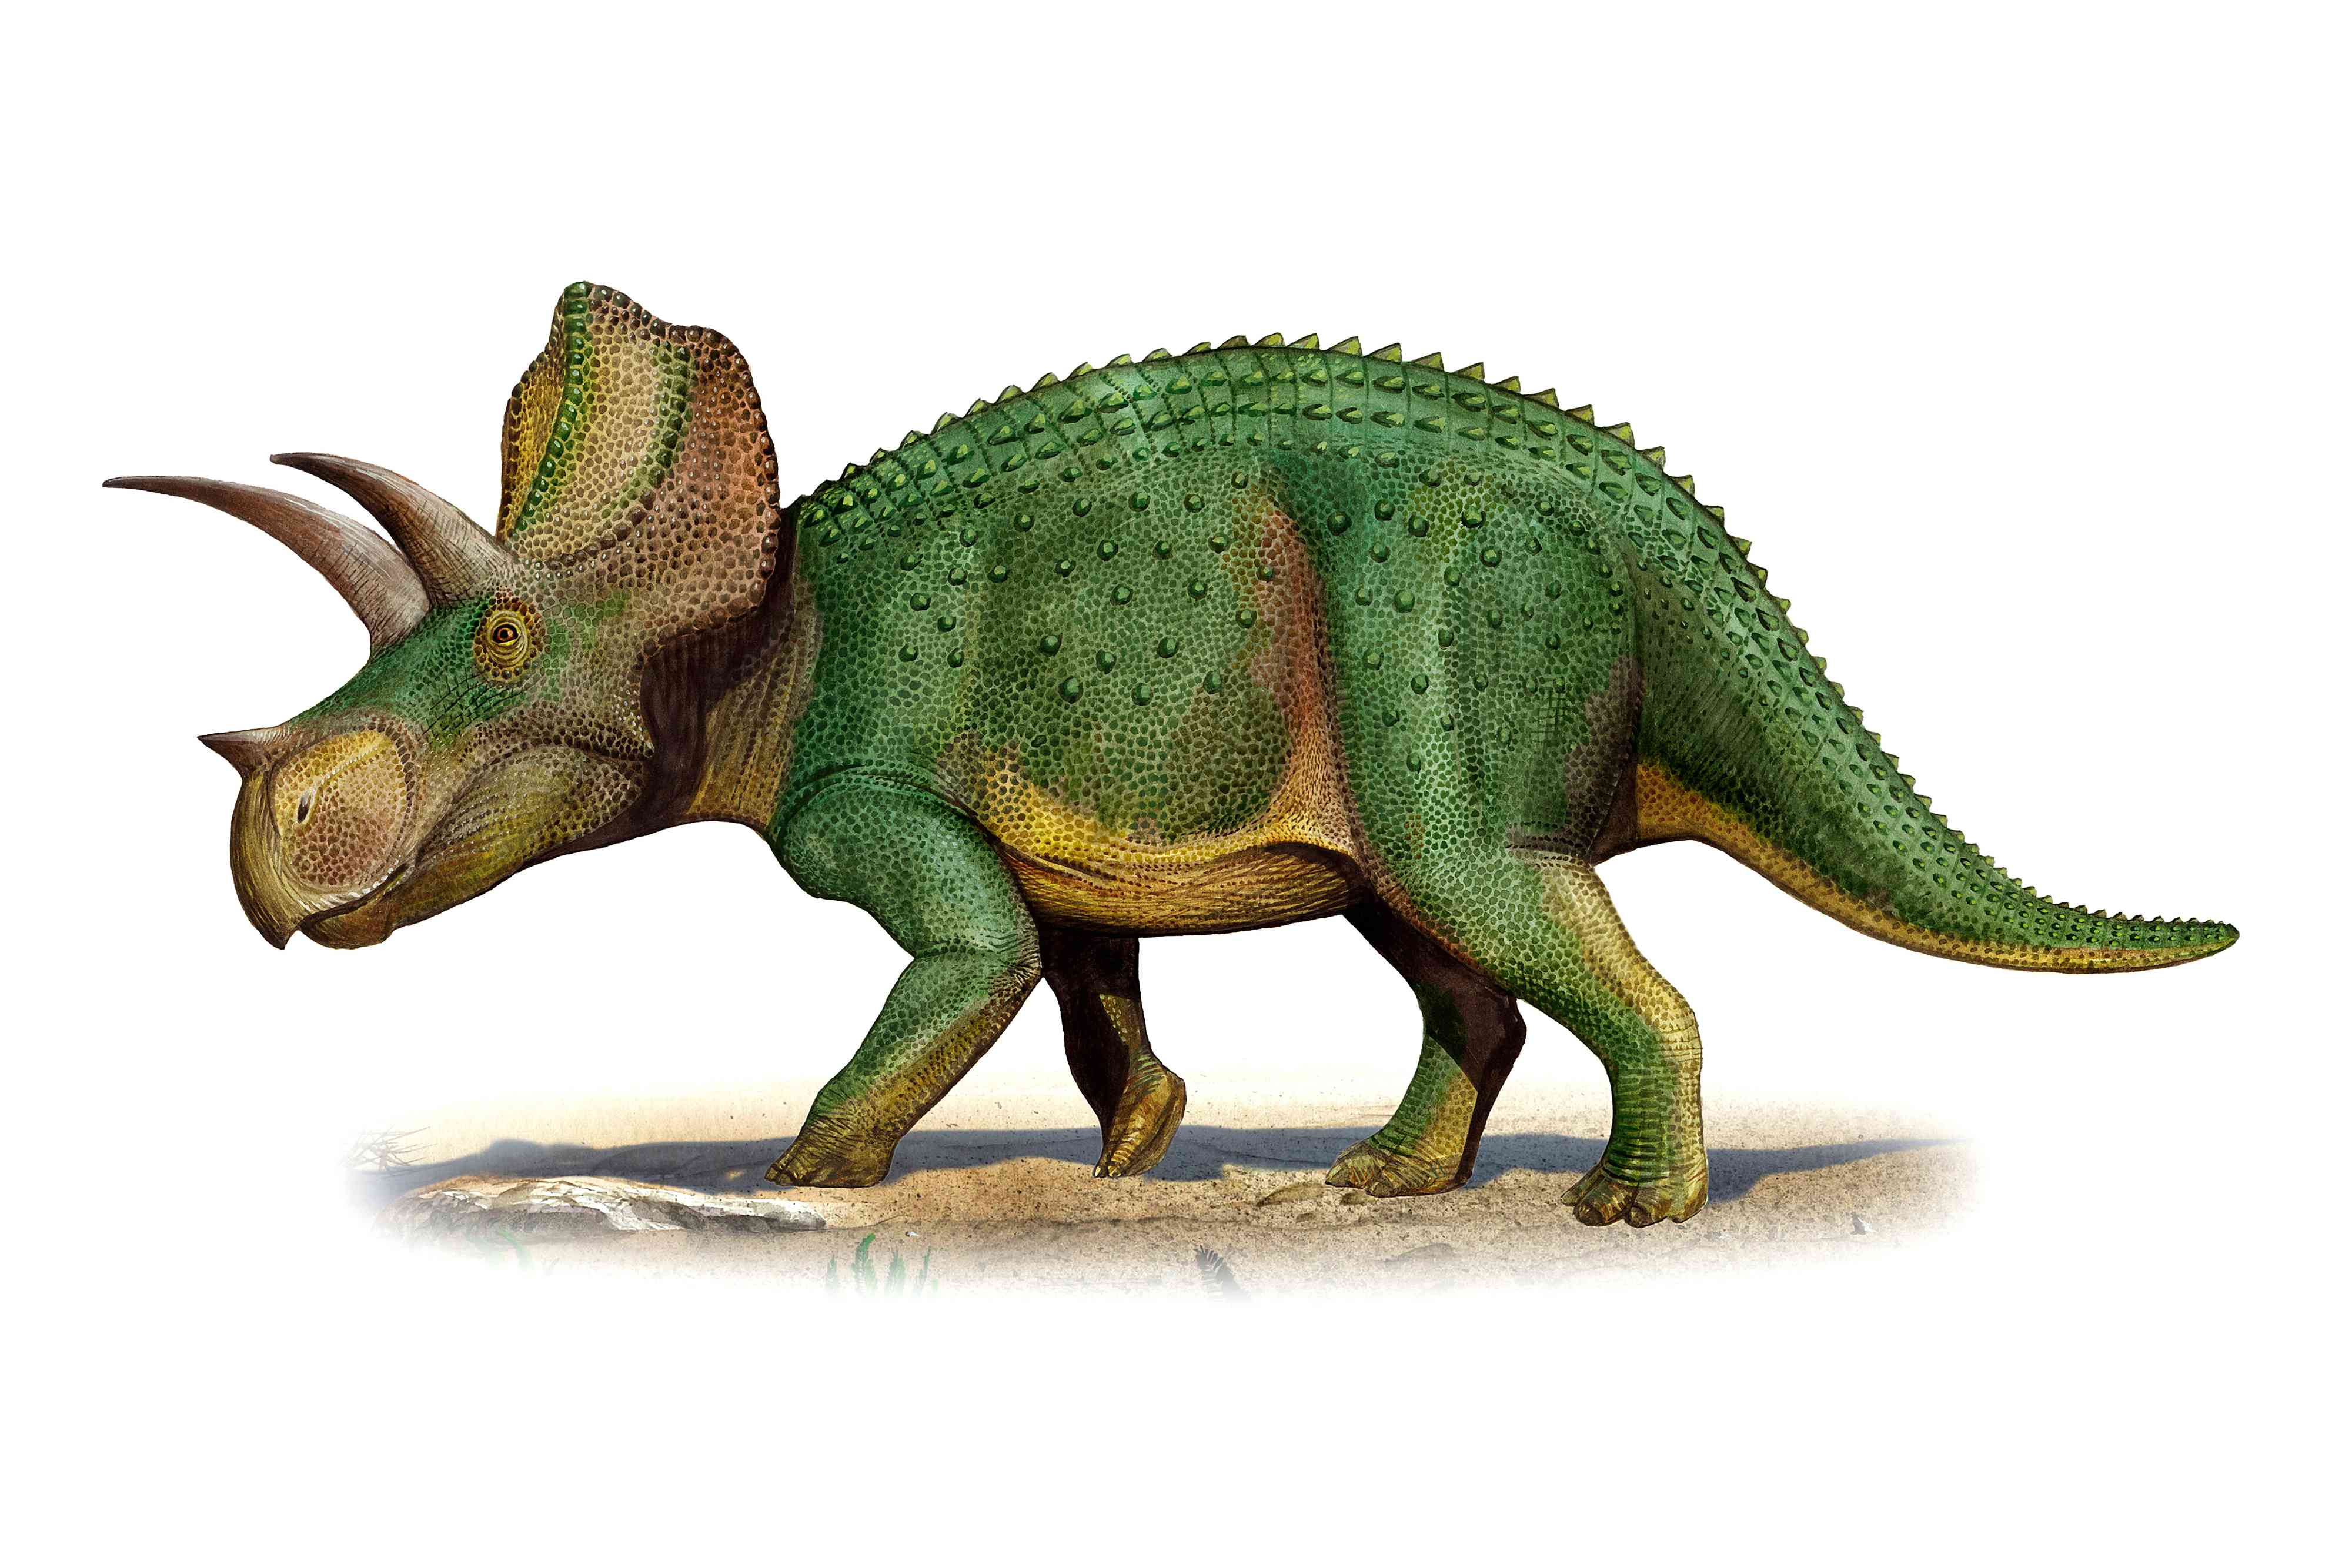 Ojoceratops fowleri, a Late Cretaceous-era dinosaur whose fossil remains were found in New Mexico